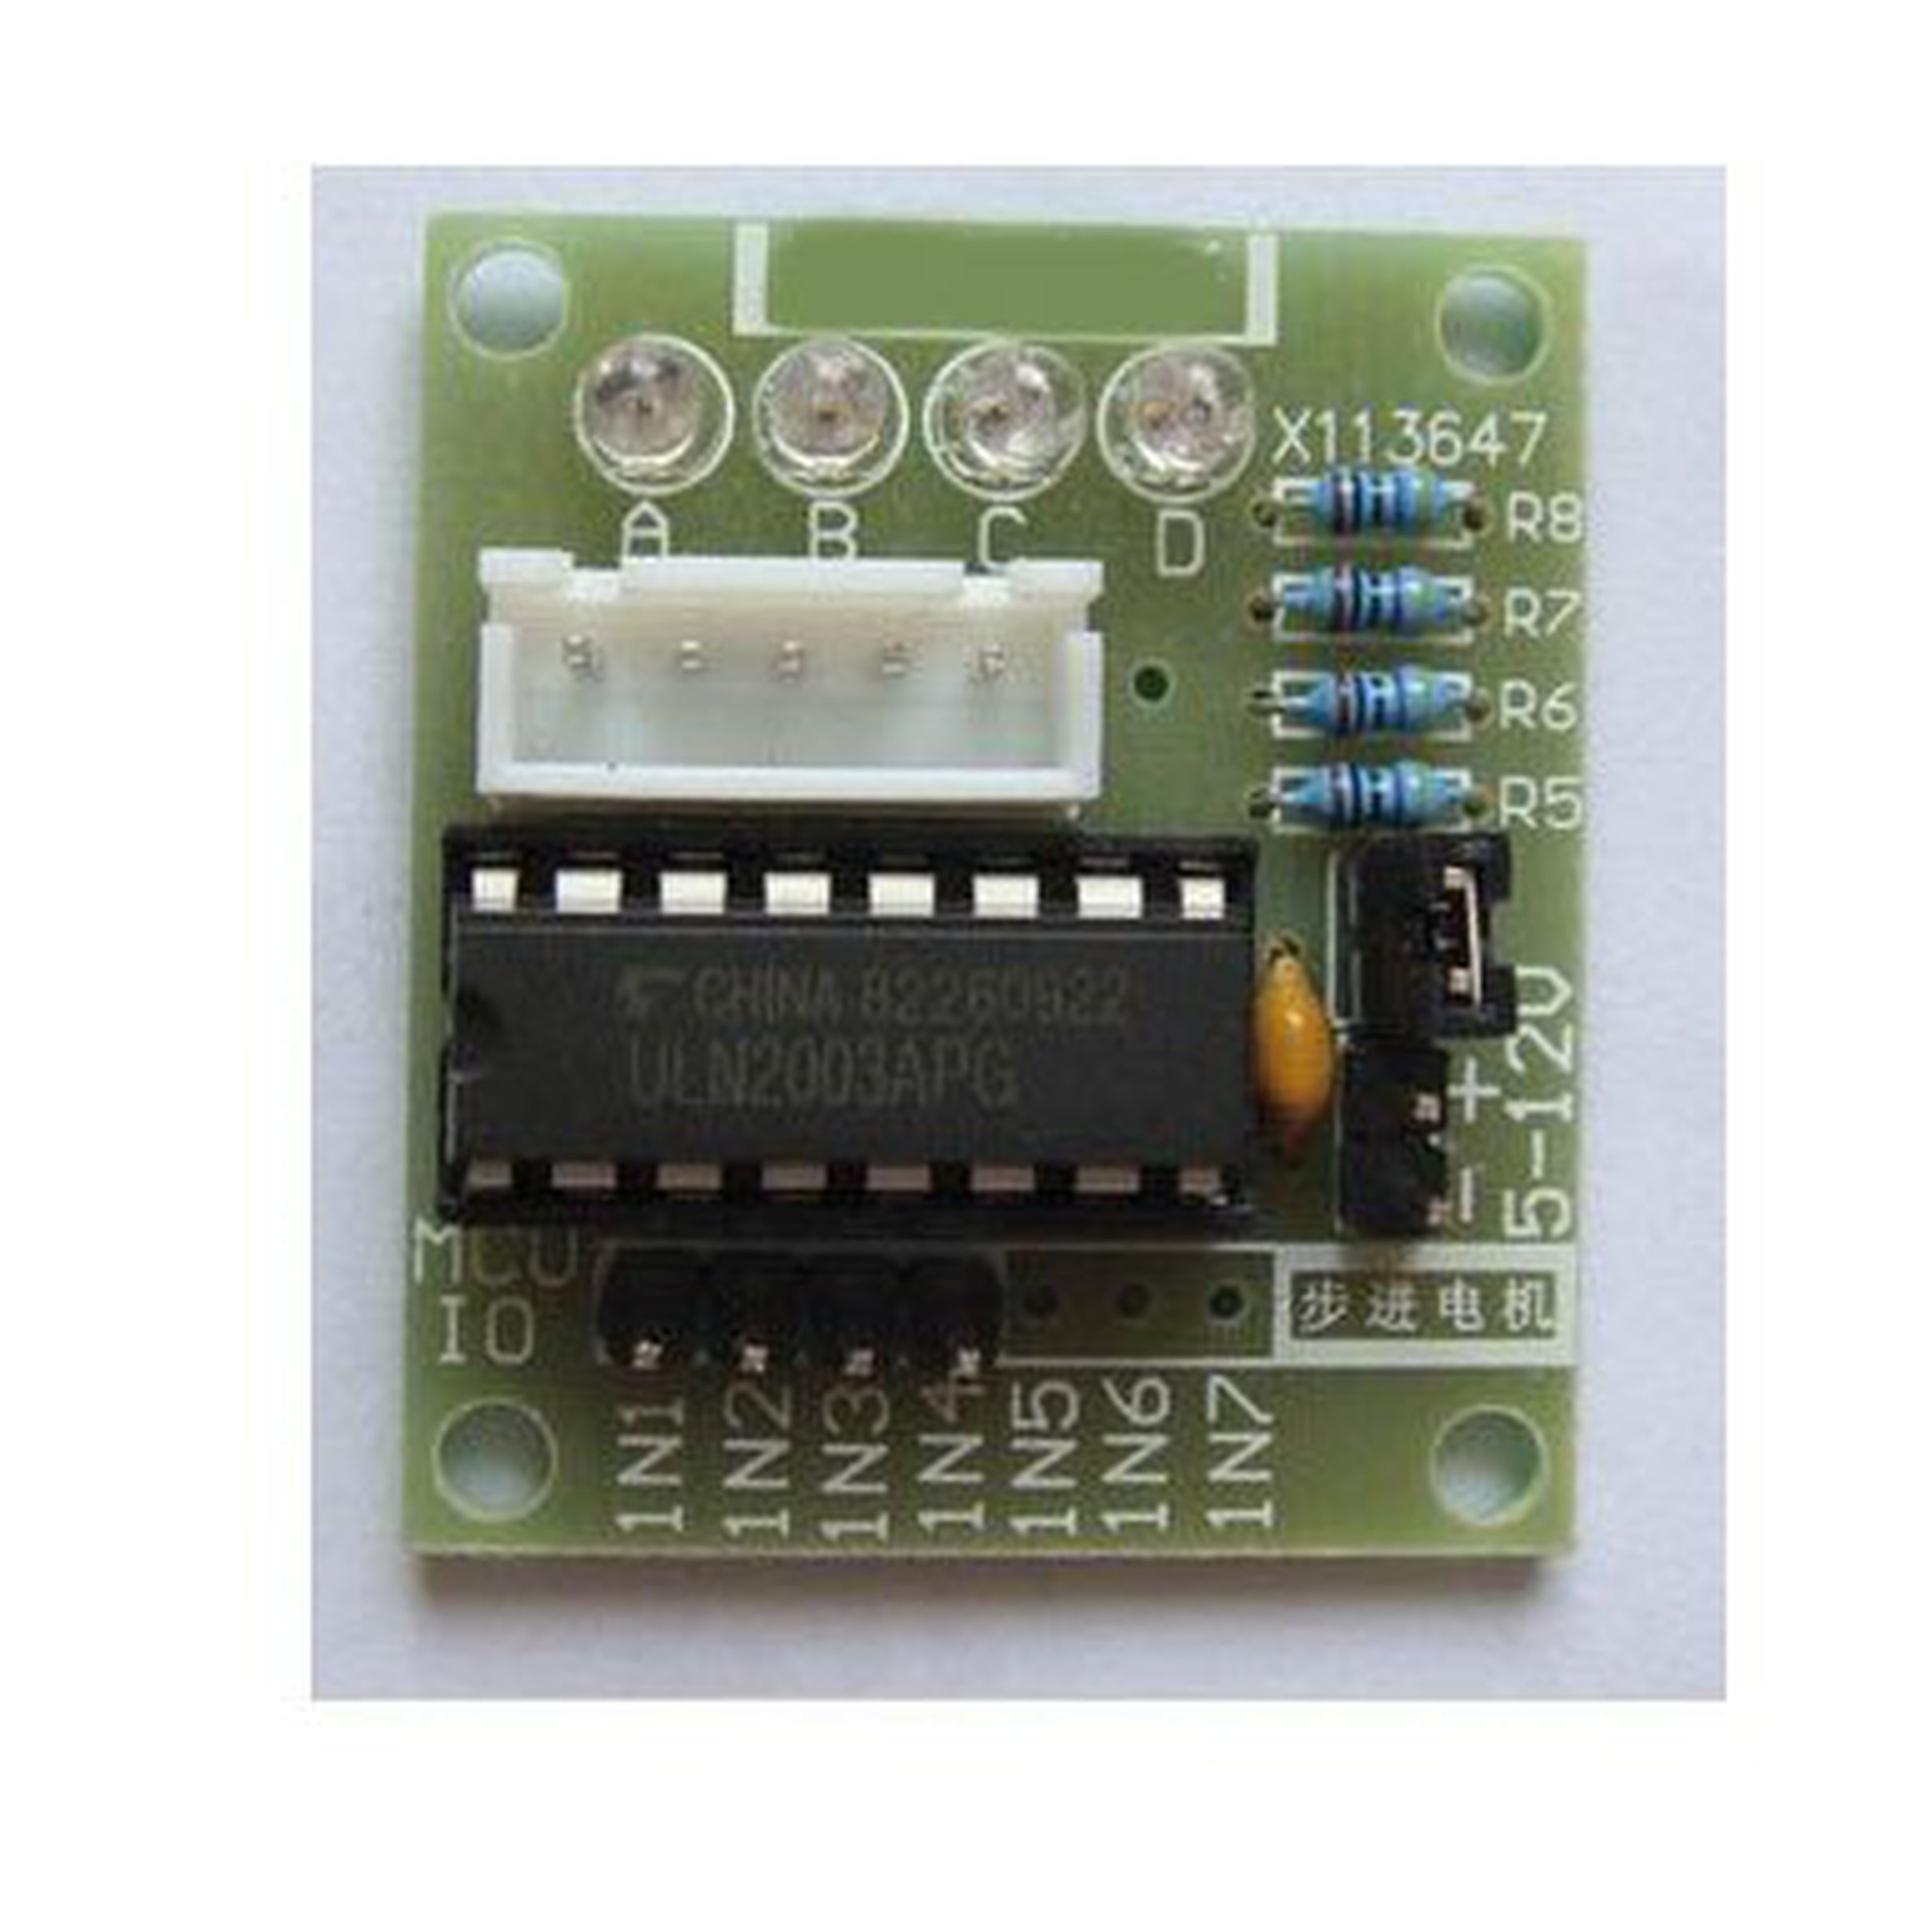 5v Stepper Motor Uln2003 Driver Board From Exlene On Tindie